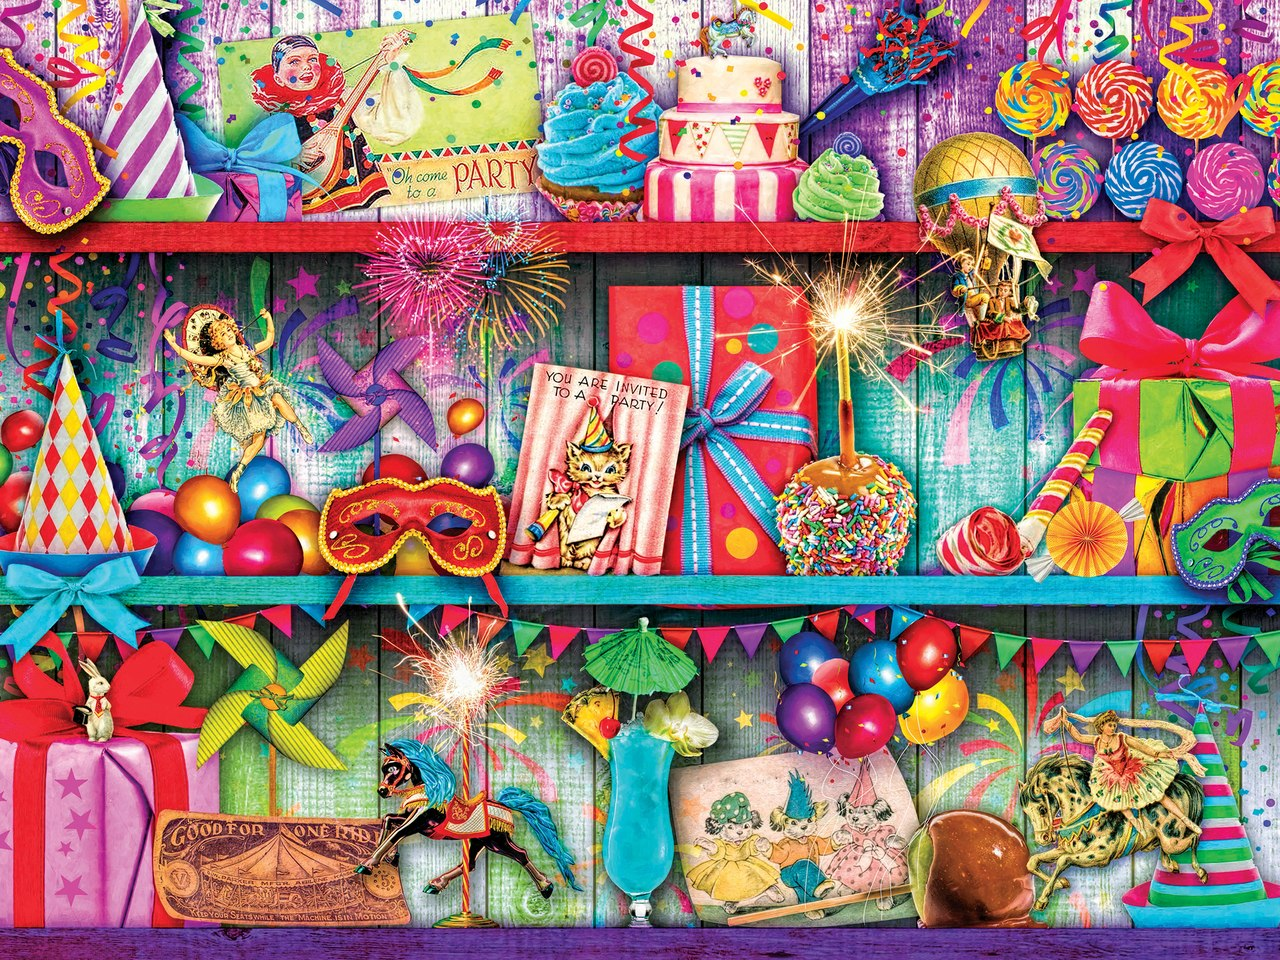 Glow In The Dark: Celebrate Good Times - 300pc EzGrip Jigsaw Puzzle by Masterpieces  			  					NEW